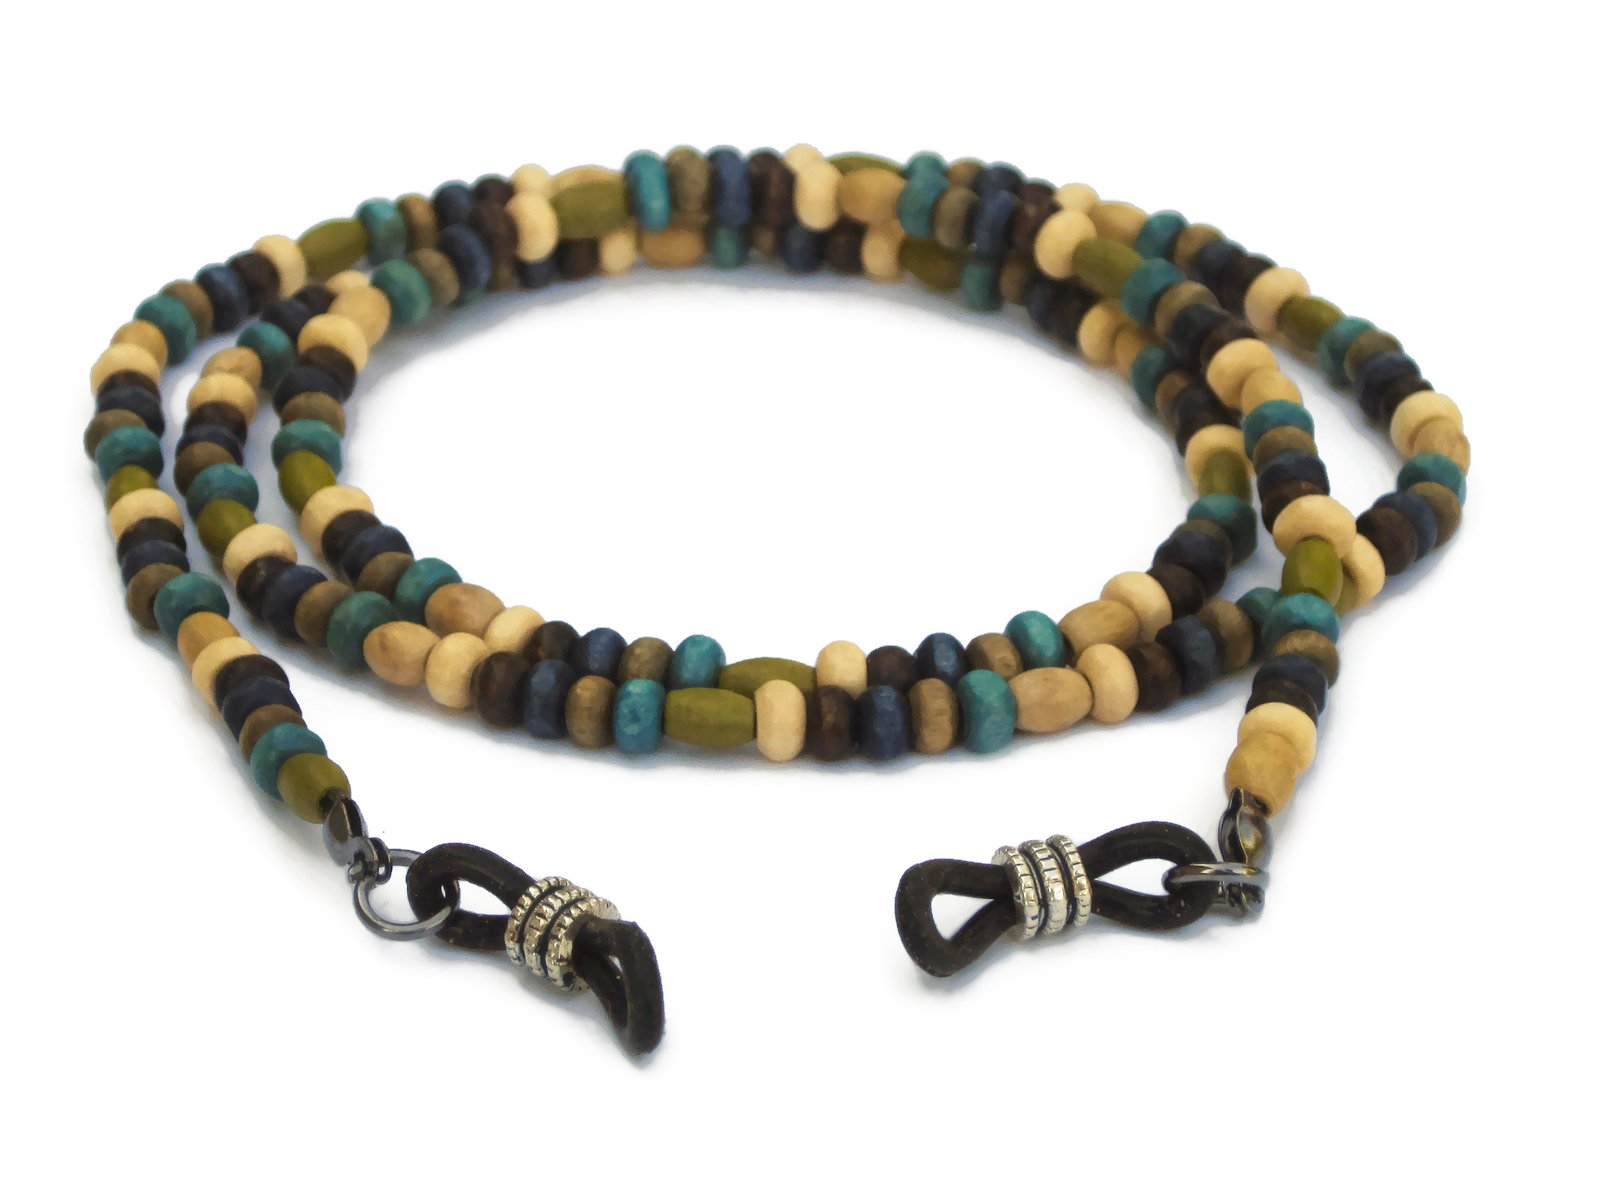 Eyeglass Chain with Wood Beads for Reading Glasses, Sunglasses and Eyeglasses by Silk Rose